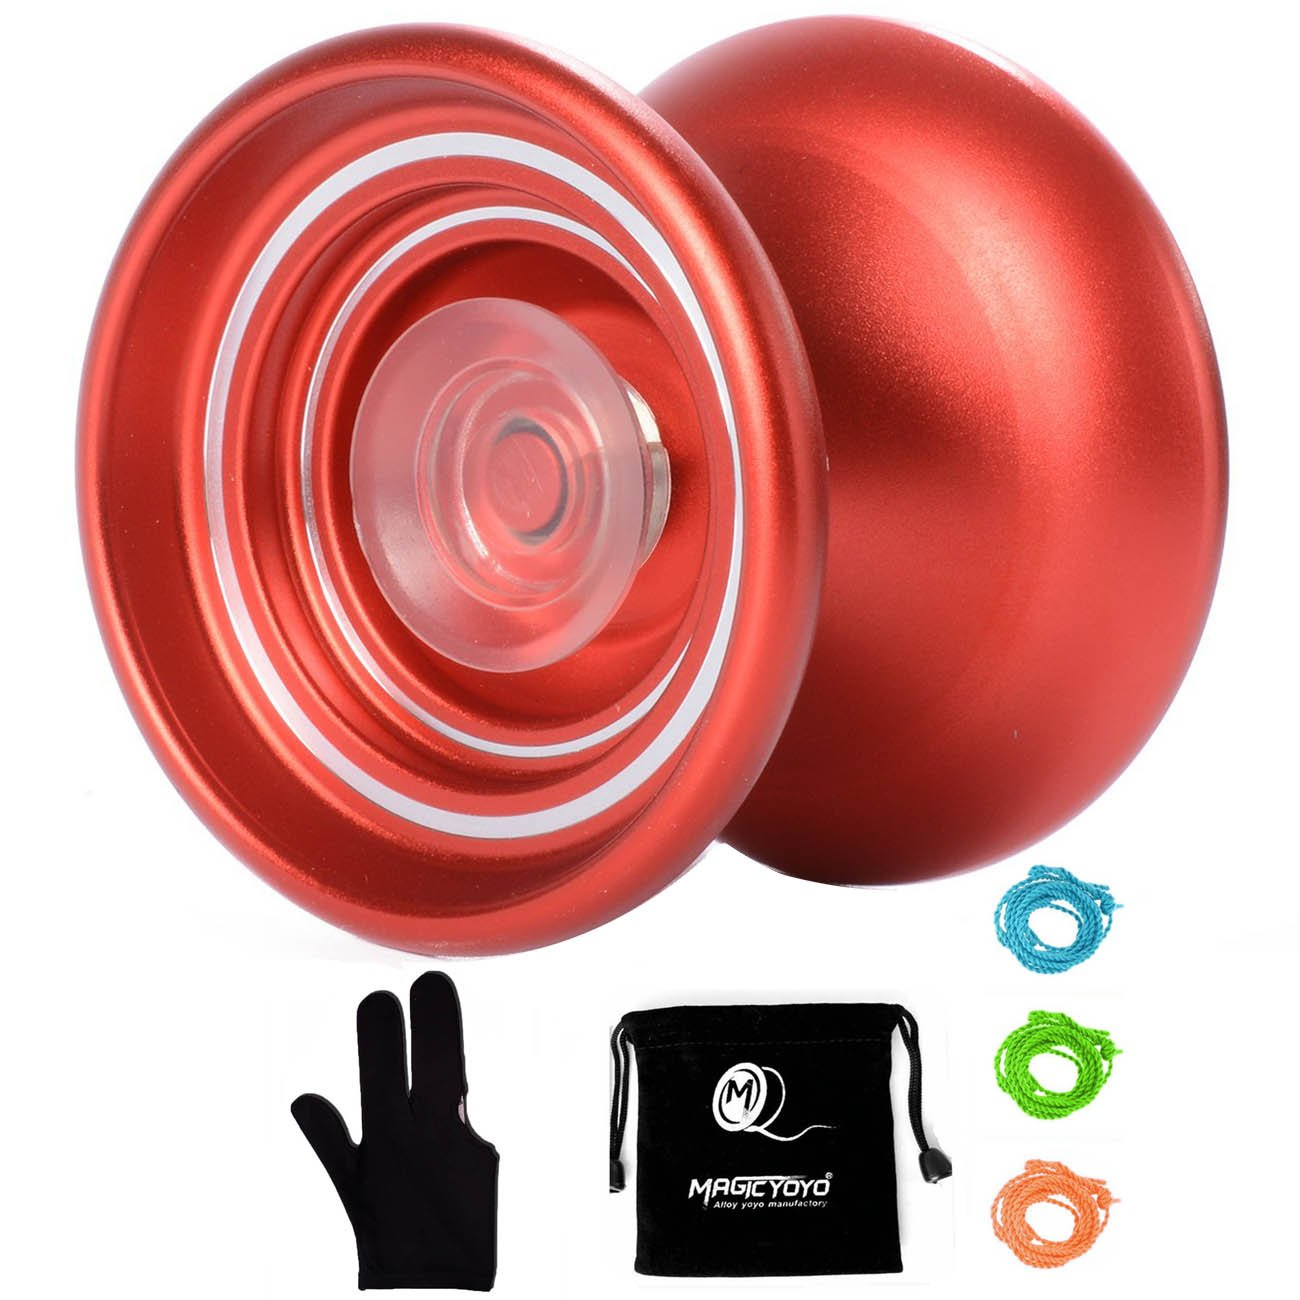 MAGICYOYO Responsive Aluminum YoYo K7 for Beginners -Colors Vary (Red)